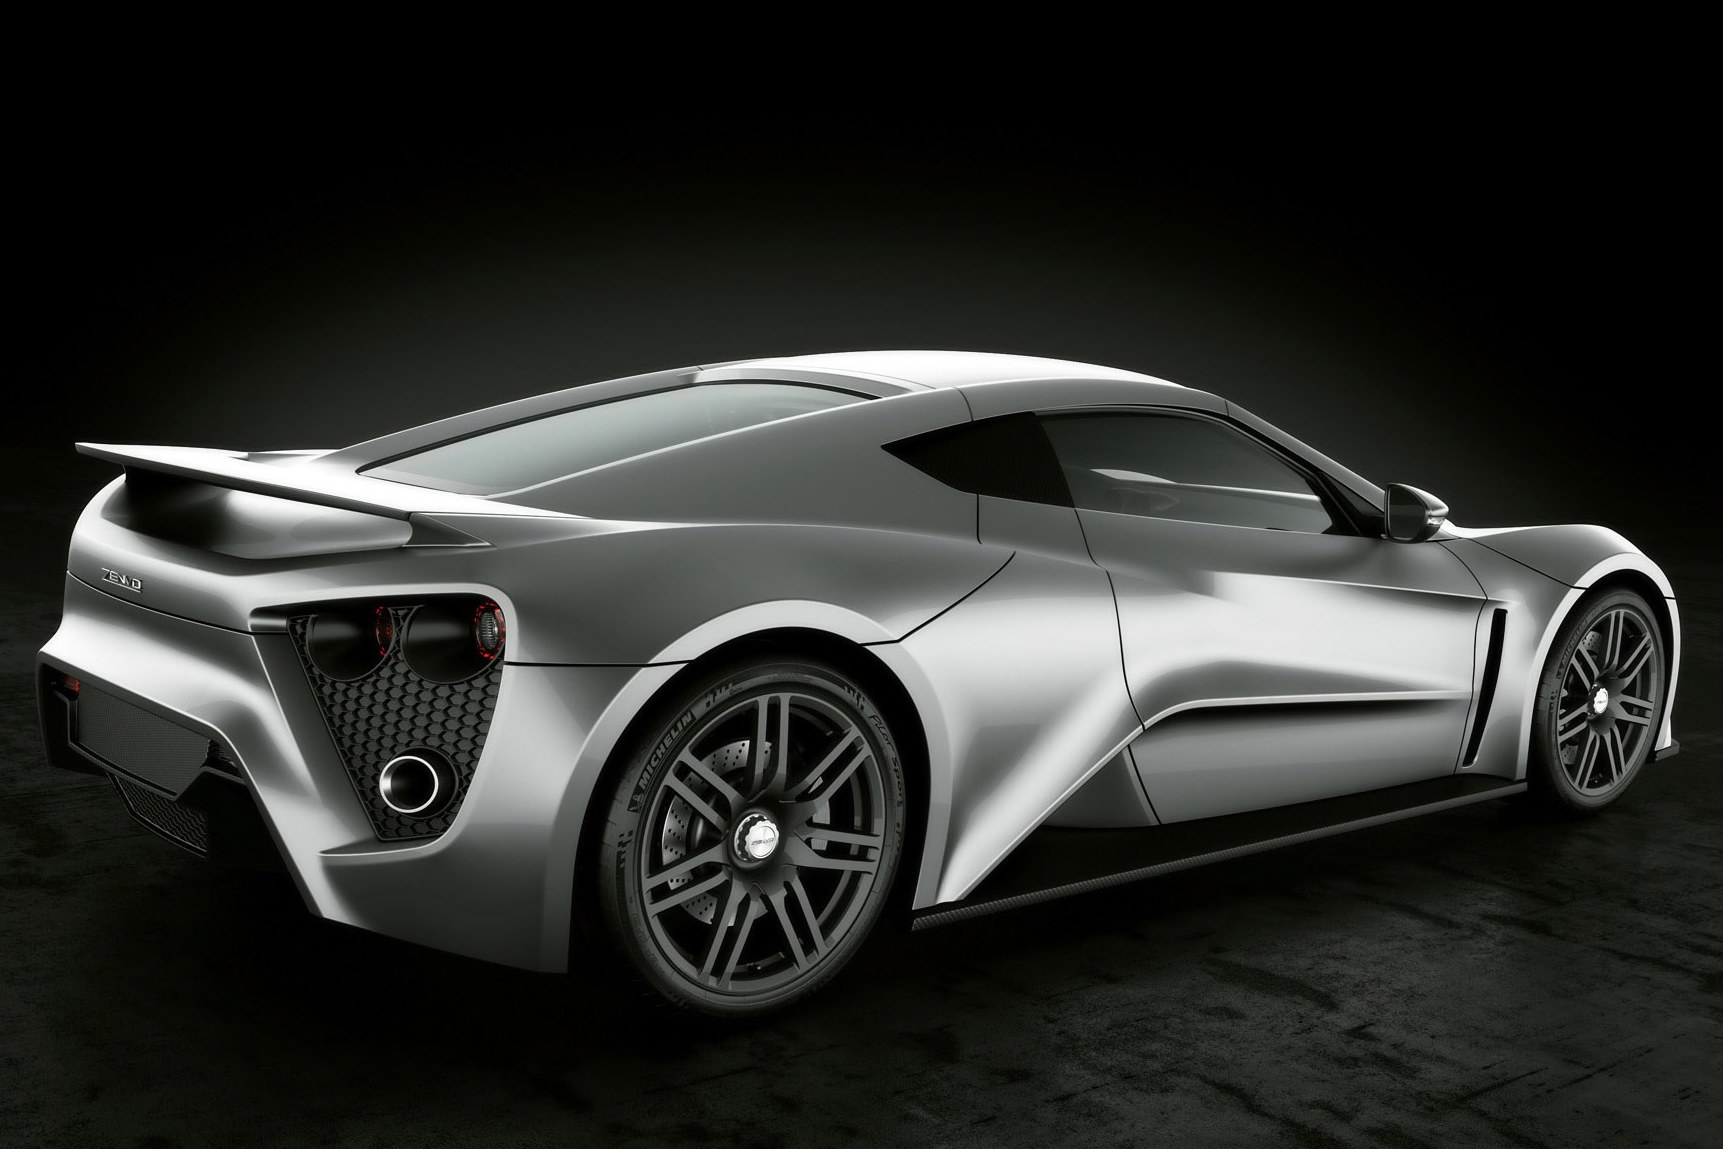 Darth Vader Would Drive This: The Zenvo ST1